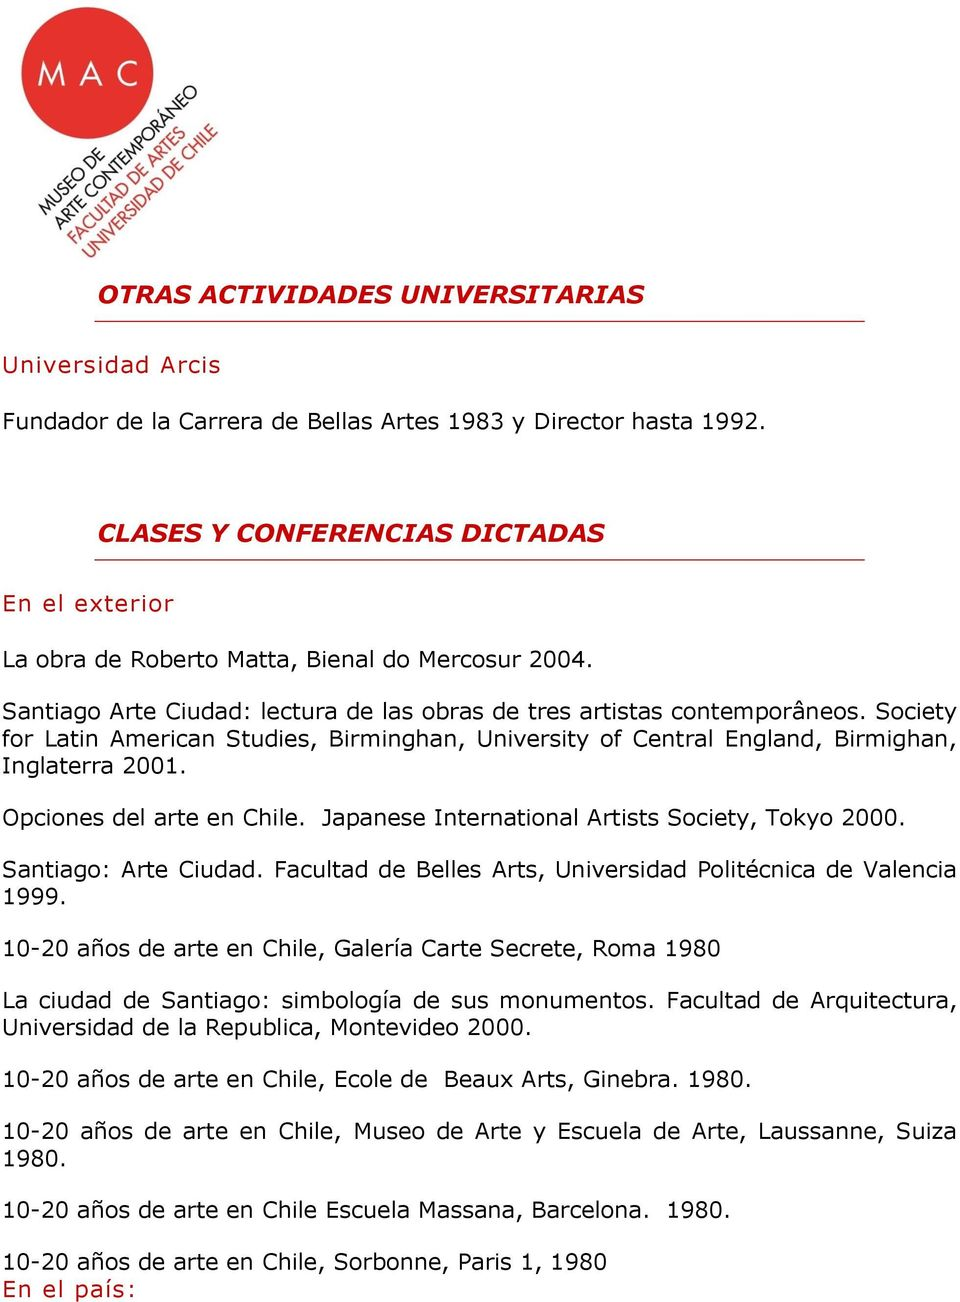 Society for Latin American Studies, Birminghan, University of Central England, Birmighan, Inglaterra 2001. Opciones del arte en Chile. Japanese International Artists Society, Tokyo 2000.